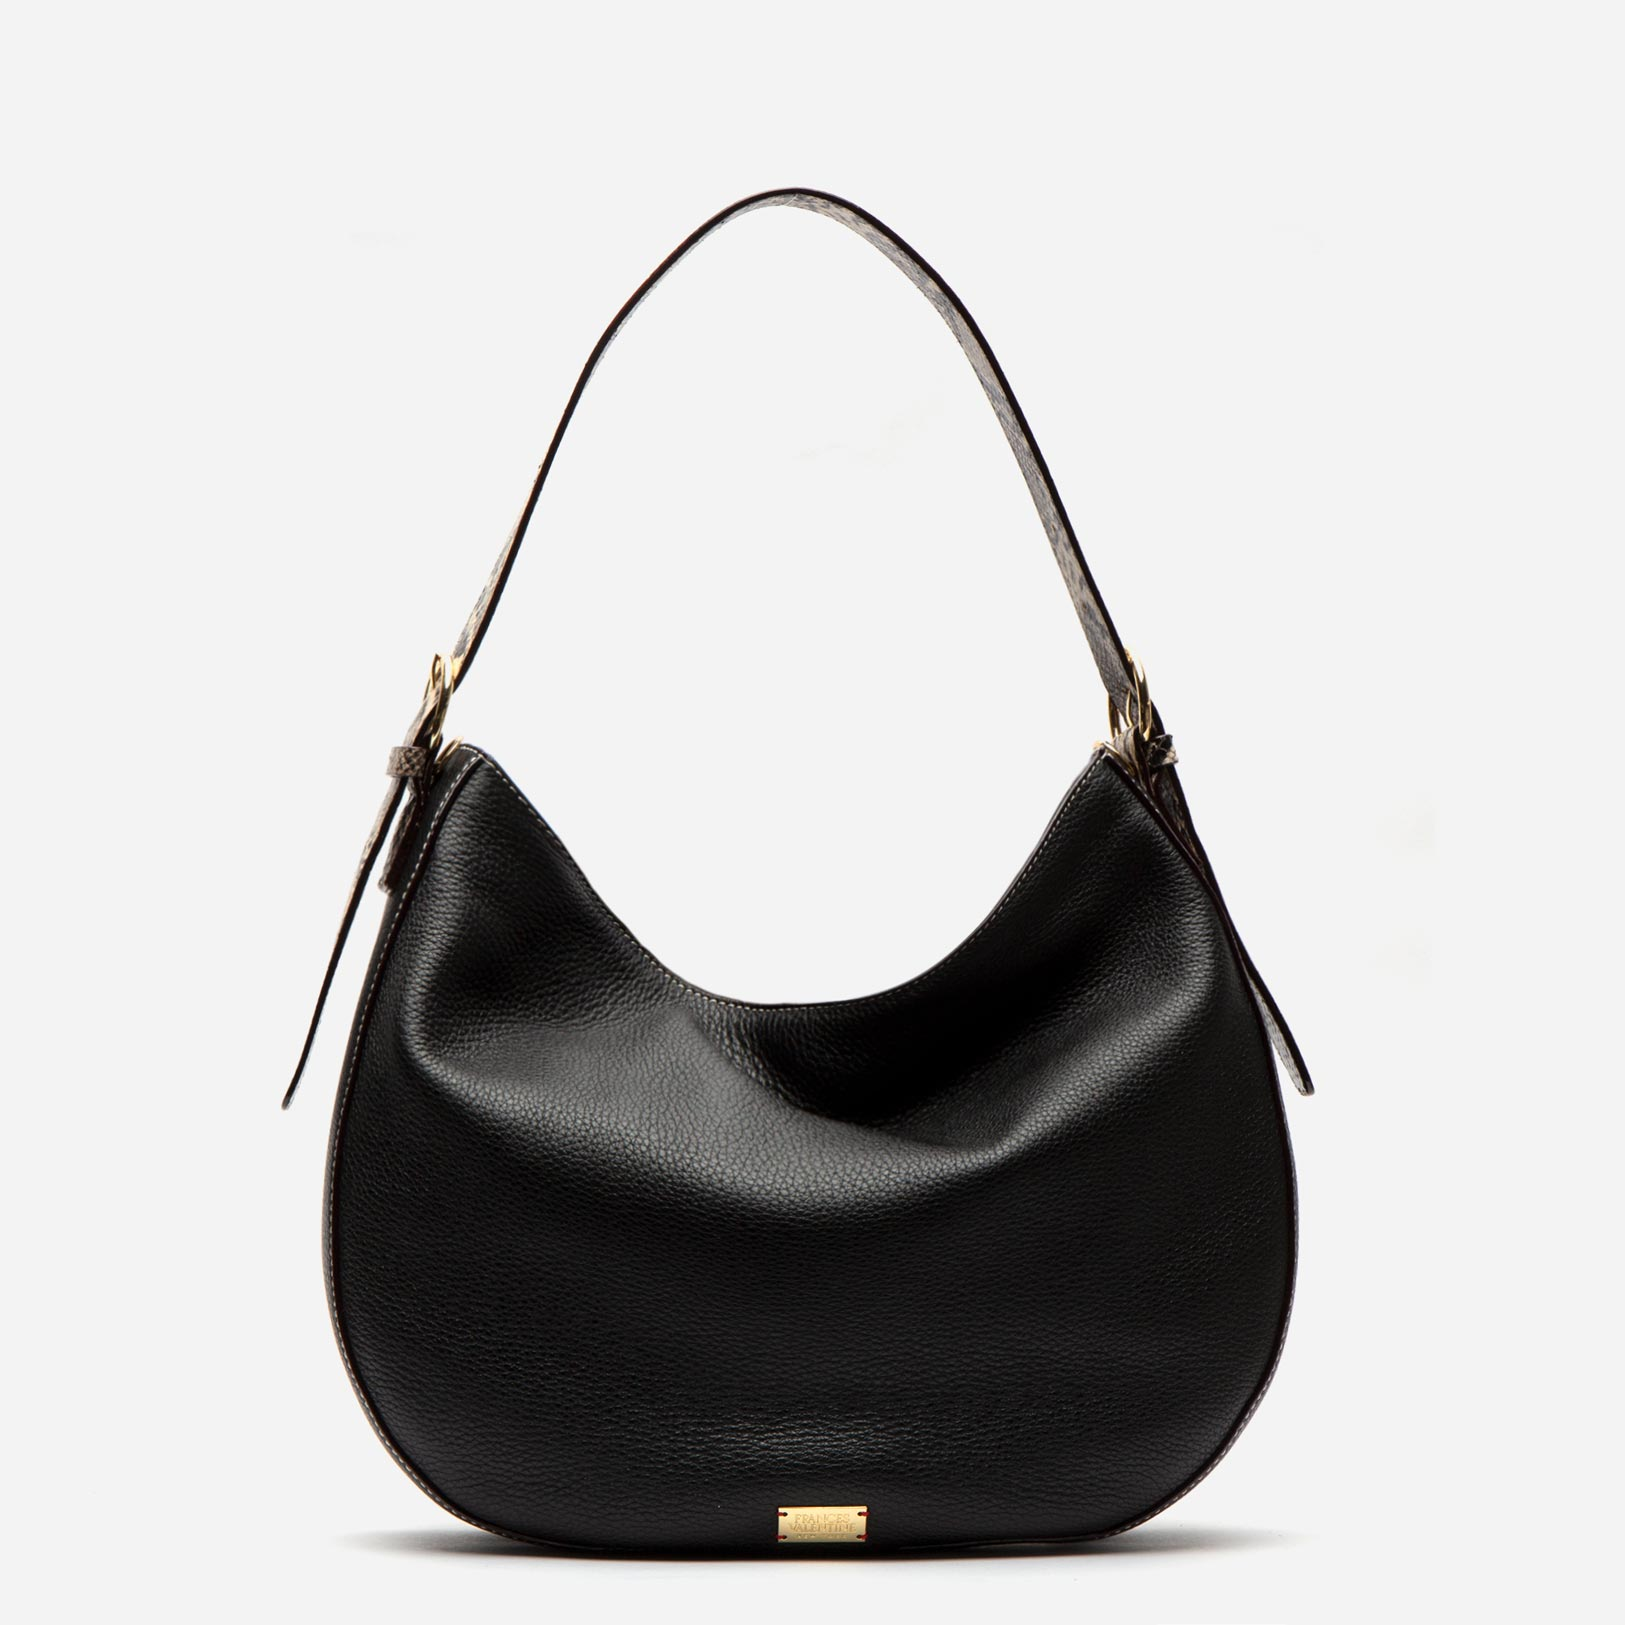 Honey Tumbled Leather Hobo Black Roccia - Frances Valentine